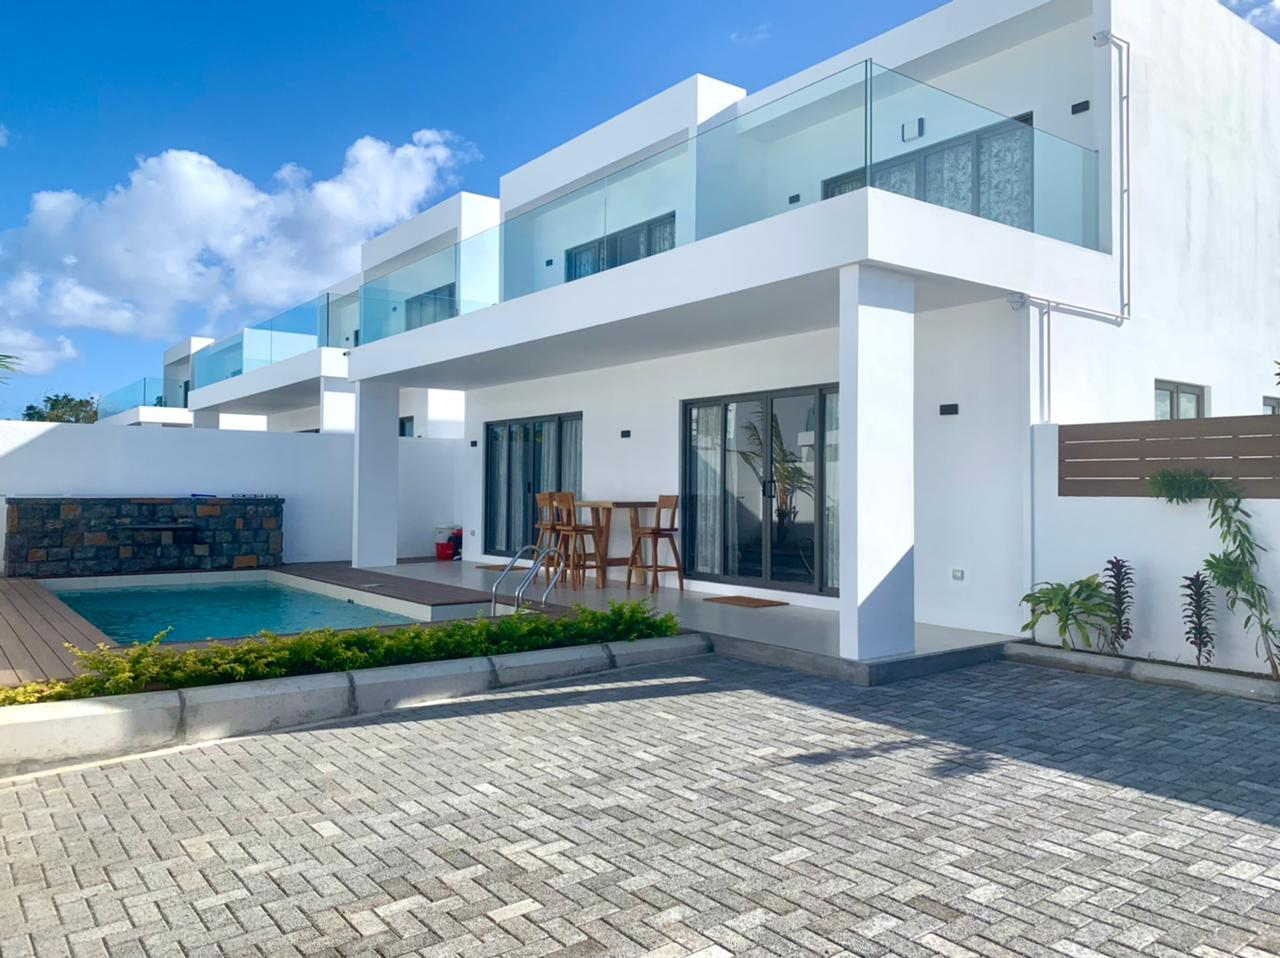 FOR SALE – Sumptuous furnishedand equippedcontemporary house of 270 m2 on a land of111 toises is locatedinthe highly residential area of Mont Mascal, Cap Malheureux.